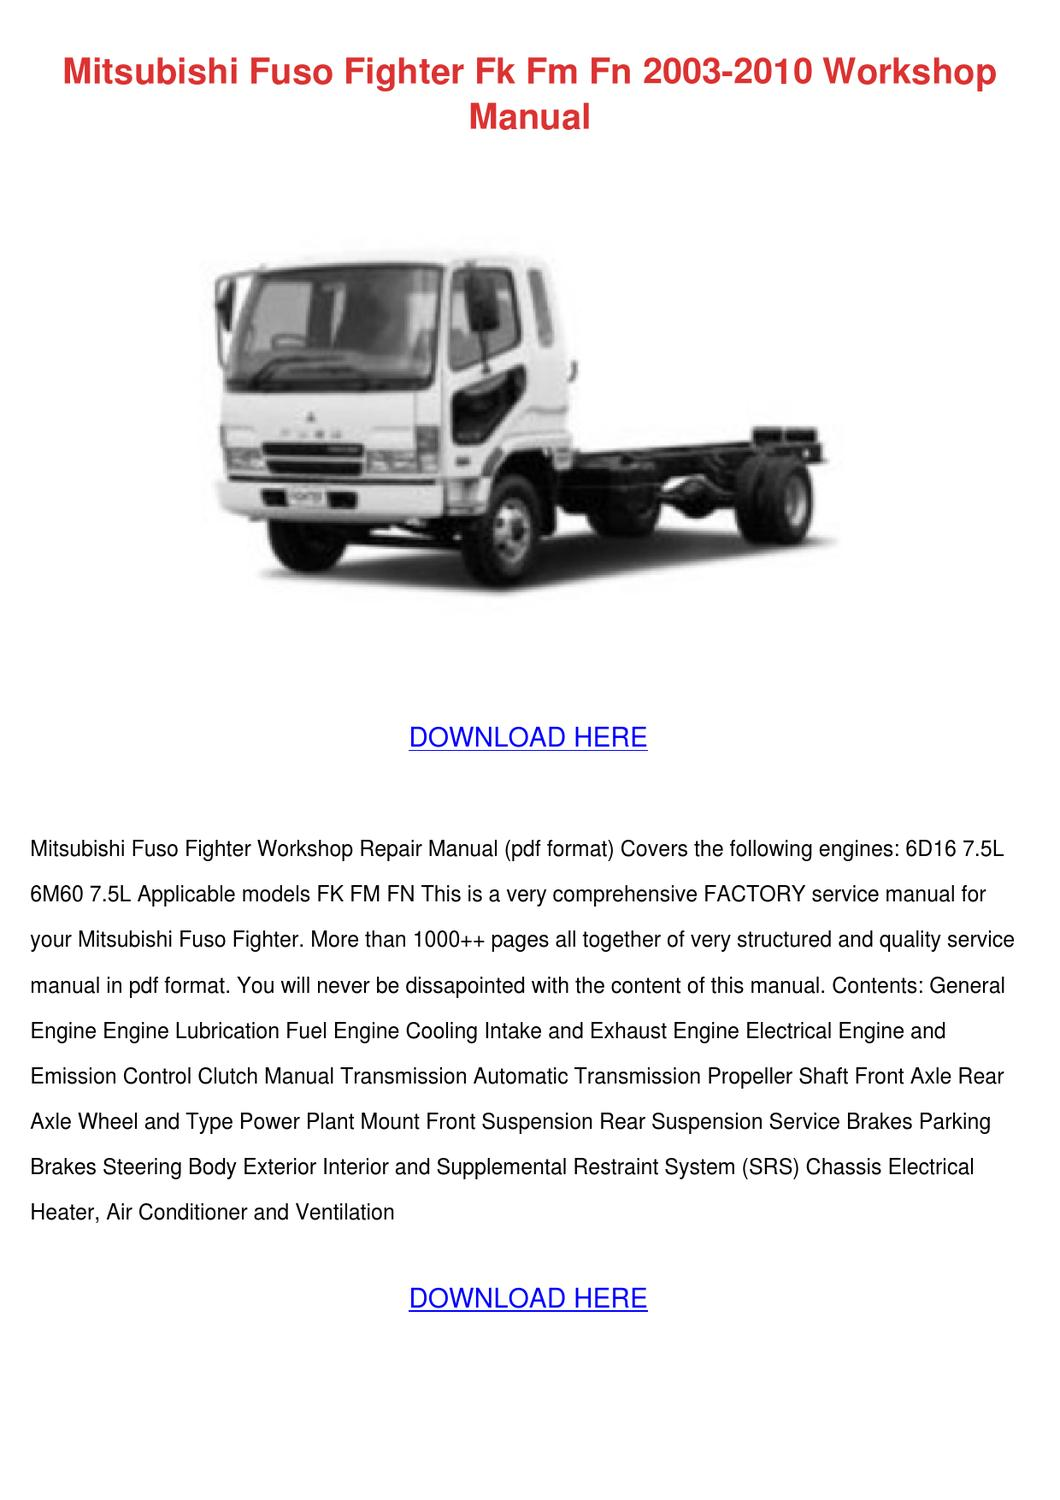 hight resolution of wiring diagram mitsubishi canter wiring diagram fuse box source mitsubishi fuso fighter fk fm